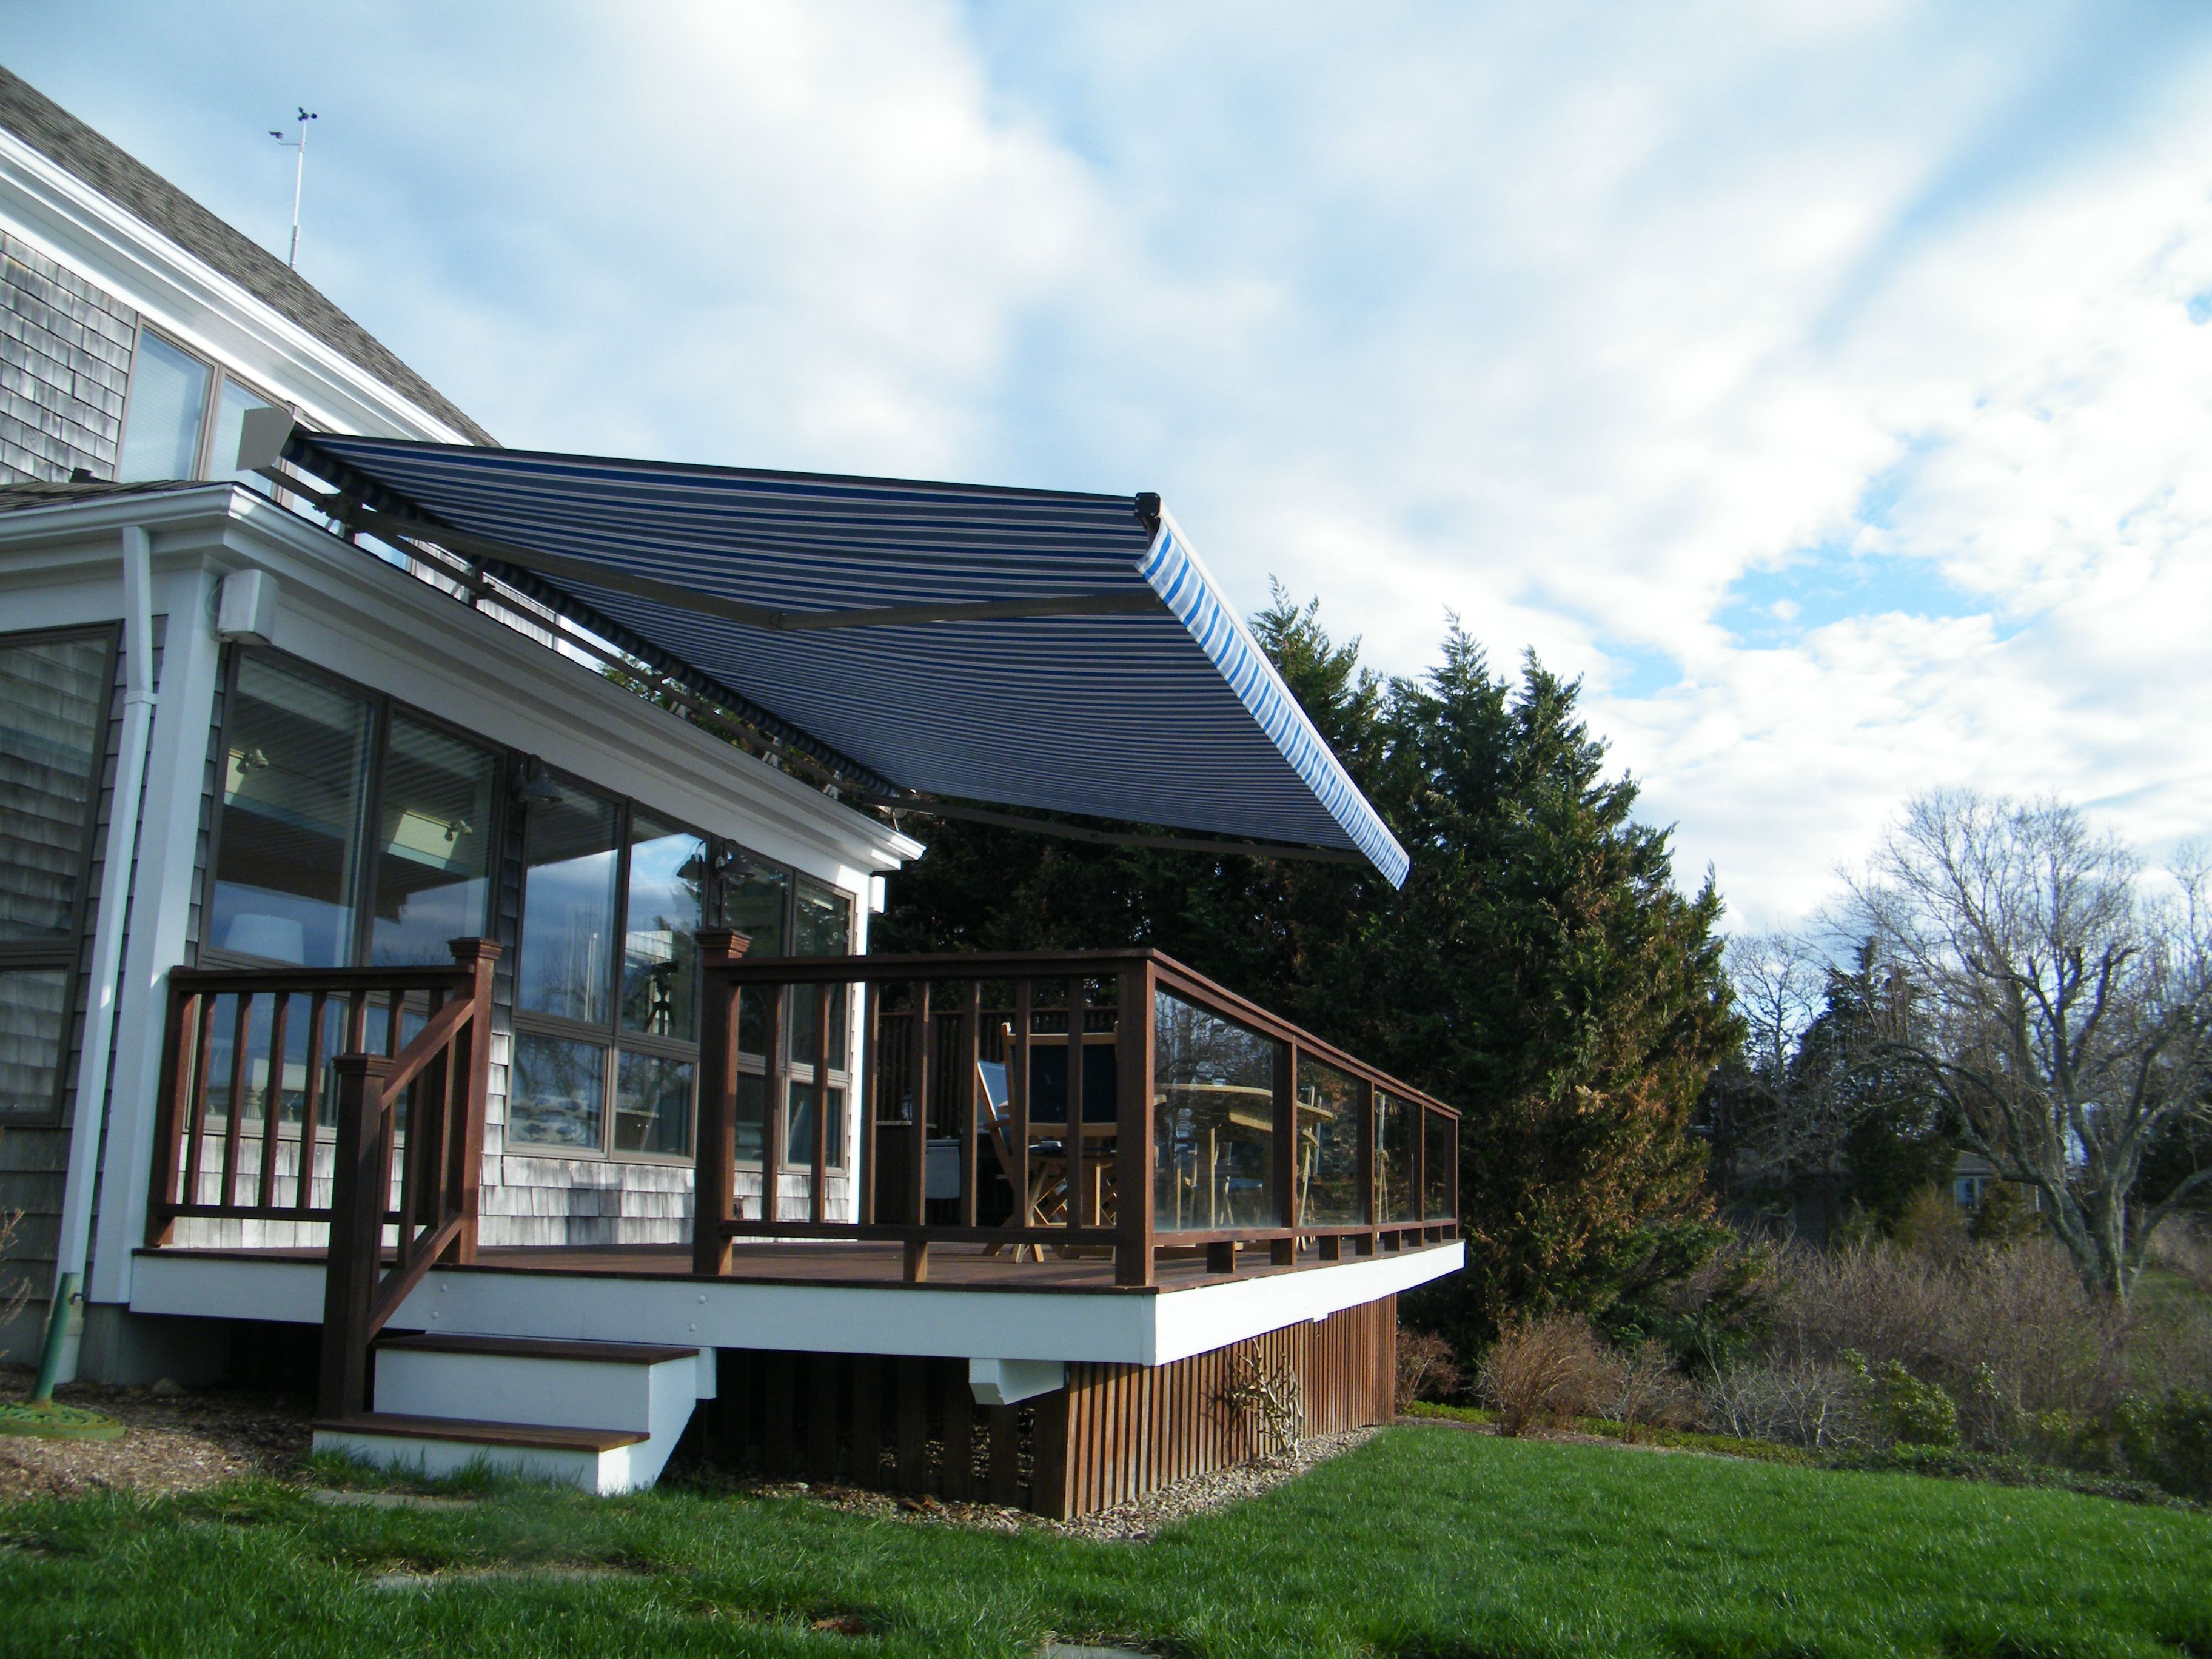 keep cool on cape cod with a retractable awning from ocean tailors